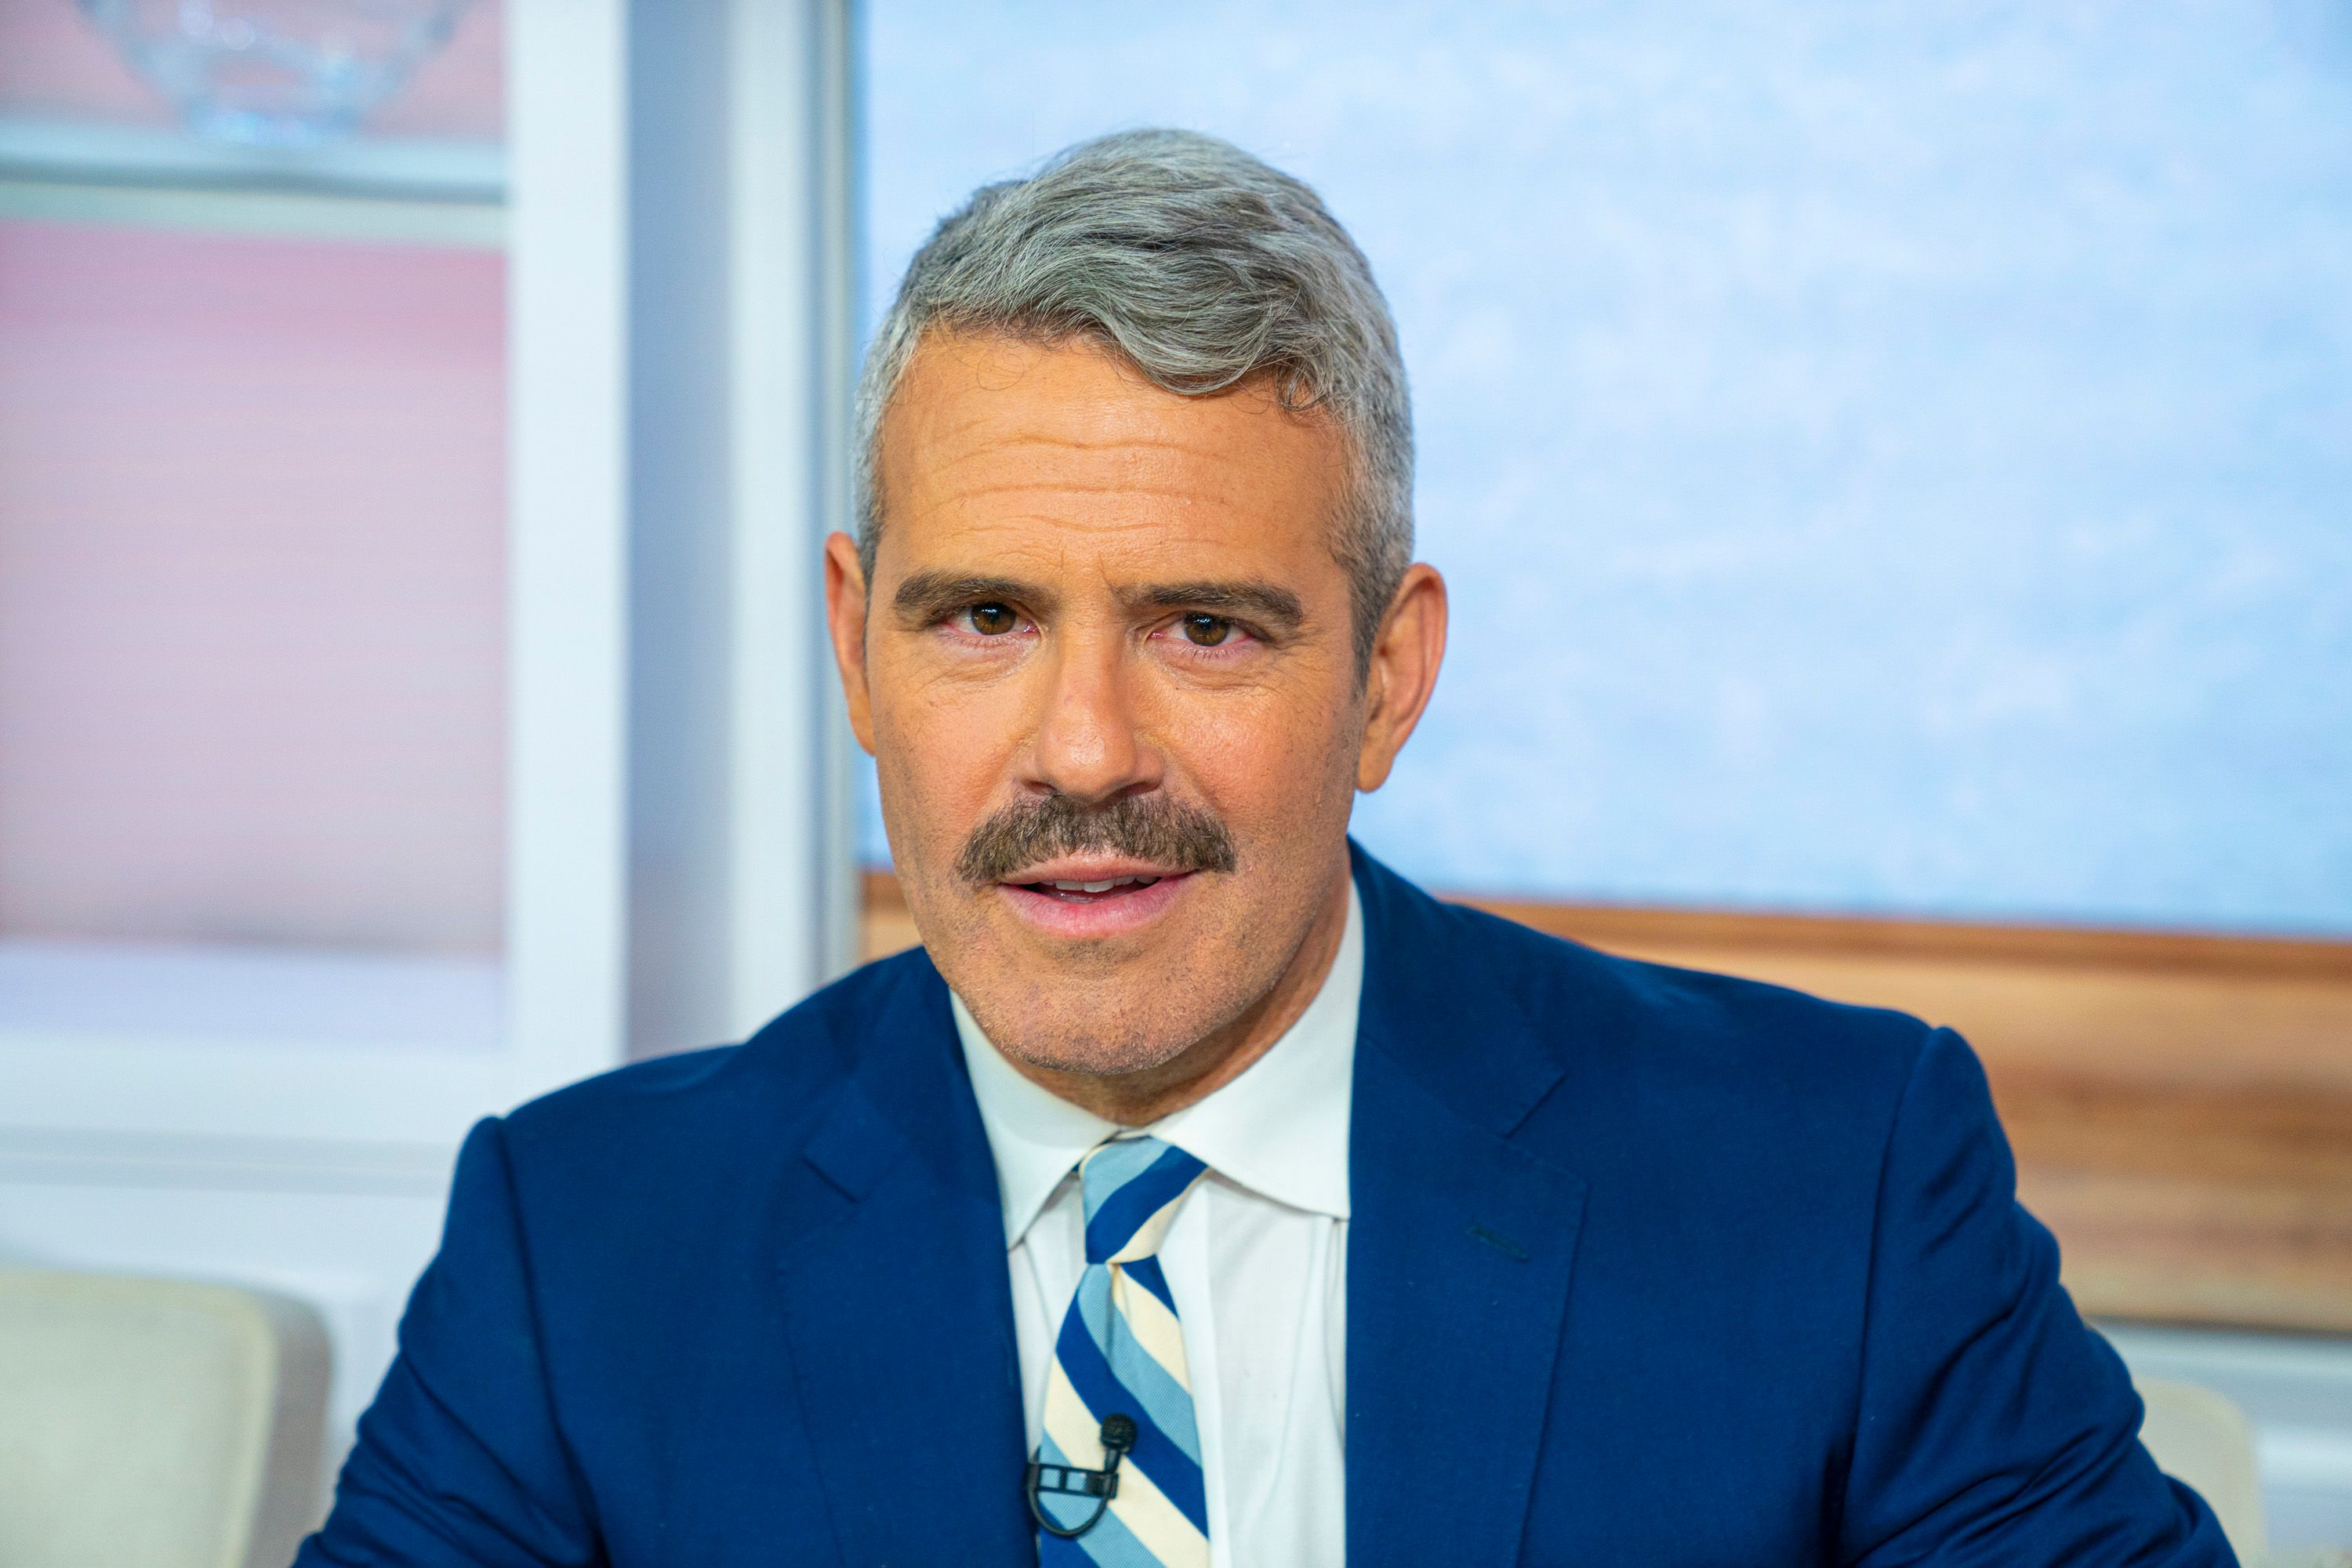 Andy Cohen headshot, wearing blue suit and has a mustache.